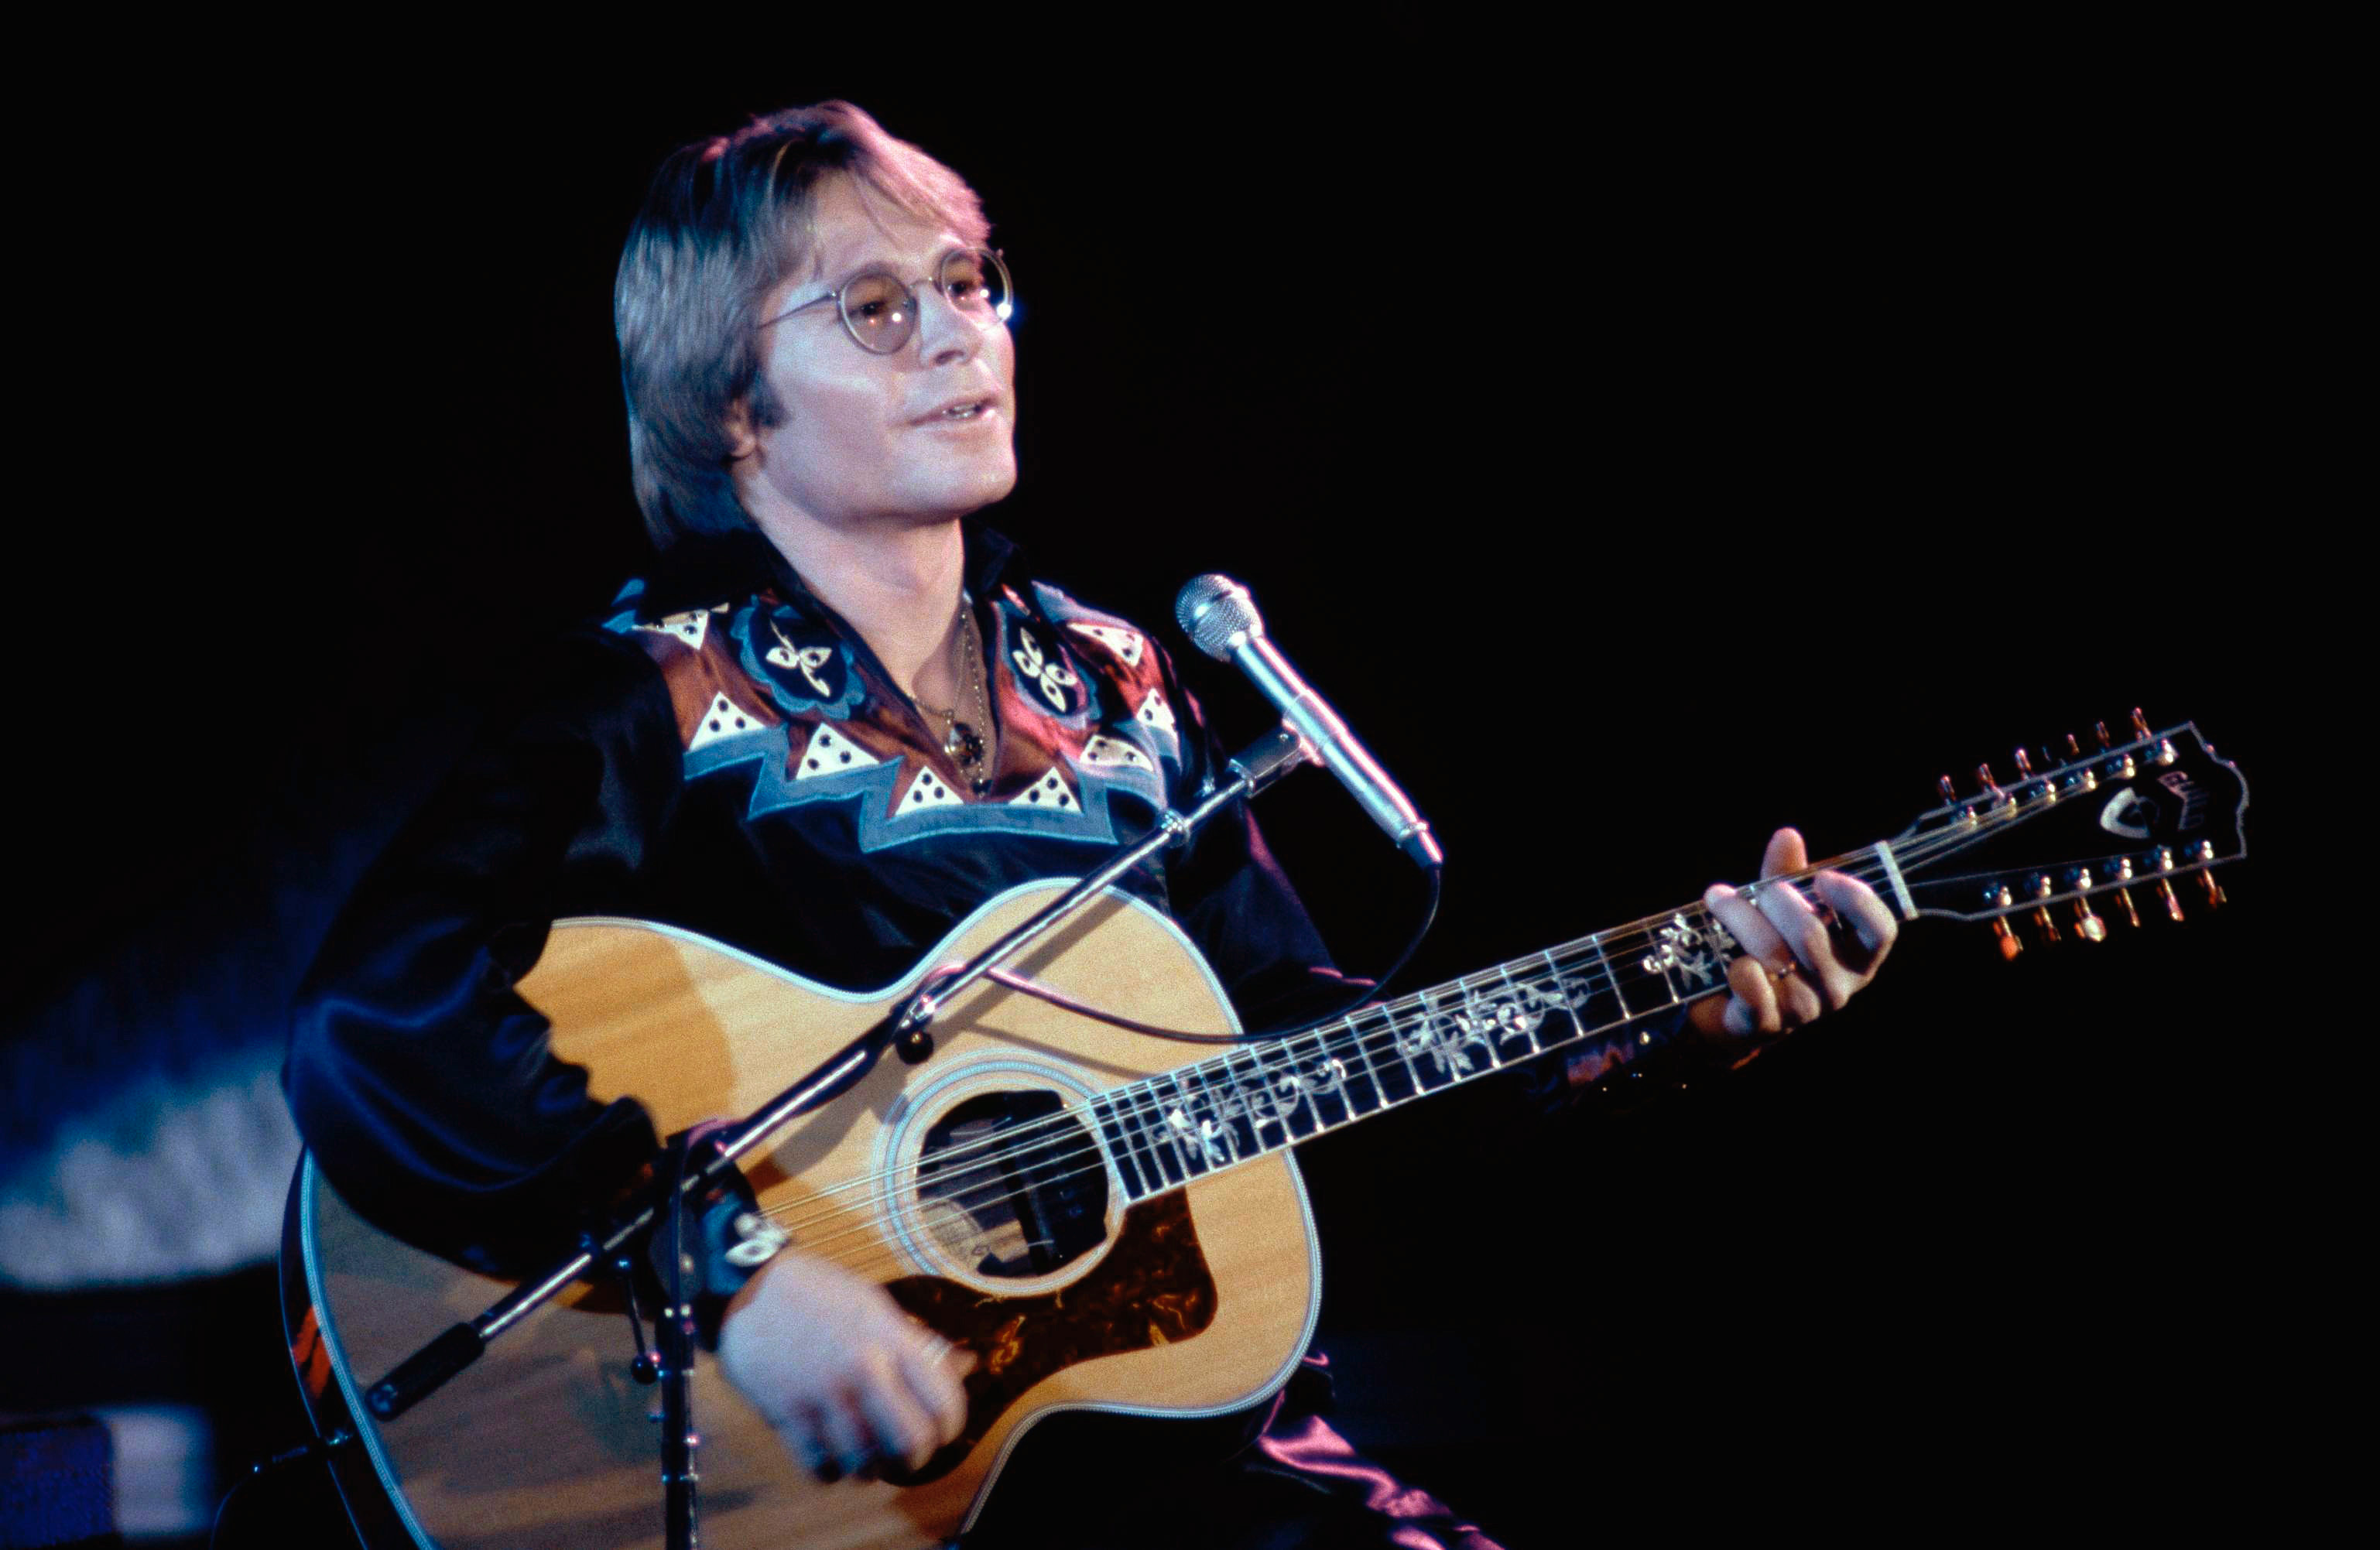 What were John Denver's biggest hits?